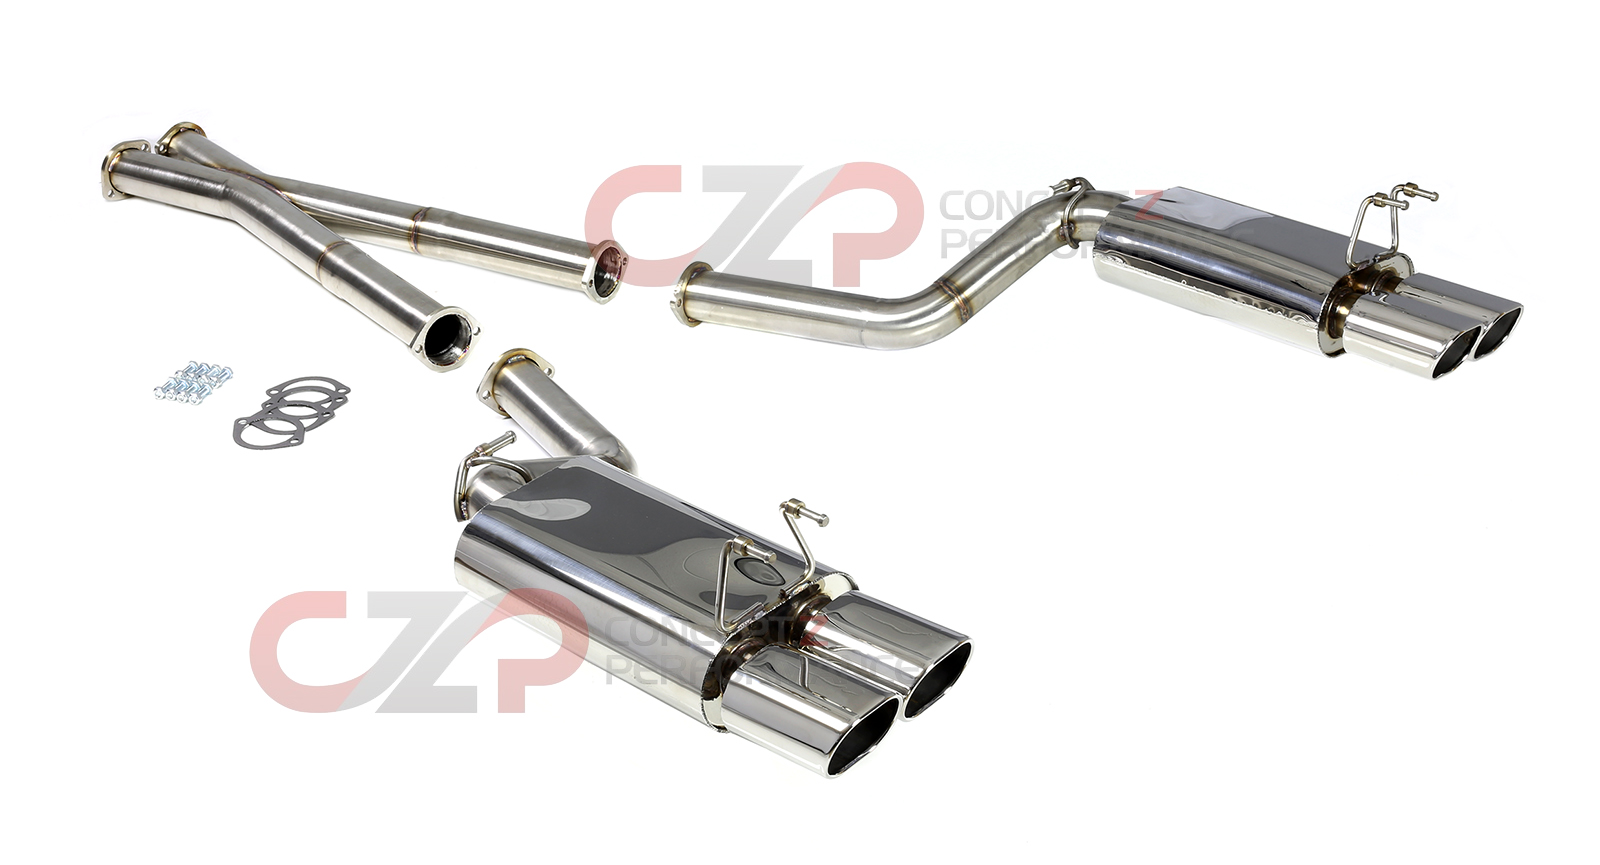 "B&B FPIM-0080 Stainless Steel Catback Exhaust System, 3"" Pipe w/ Quad 4.5"" Oval Tips, 2+2 - Nissan 300ZX 90-95 Z32"